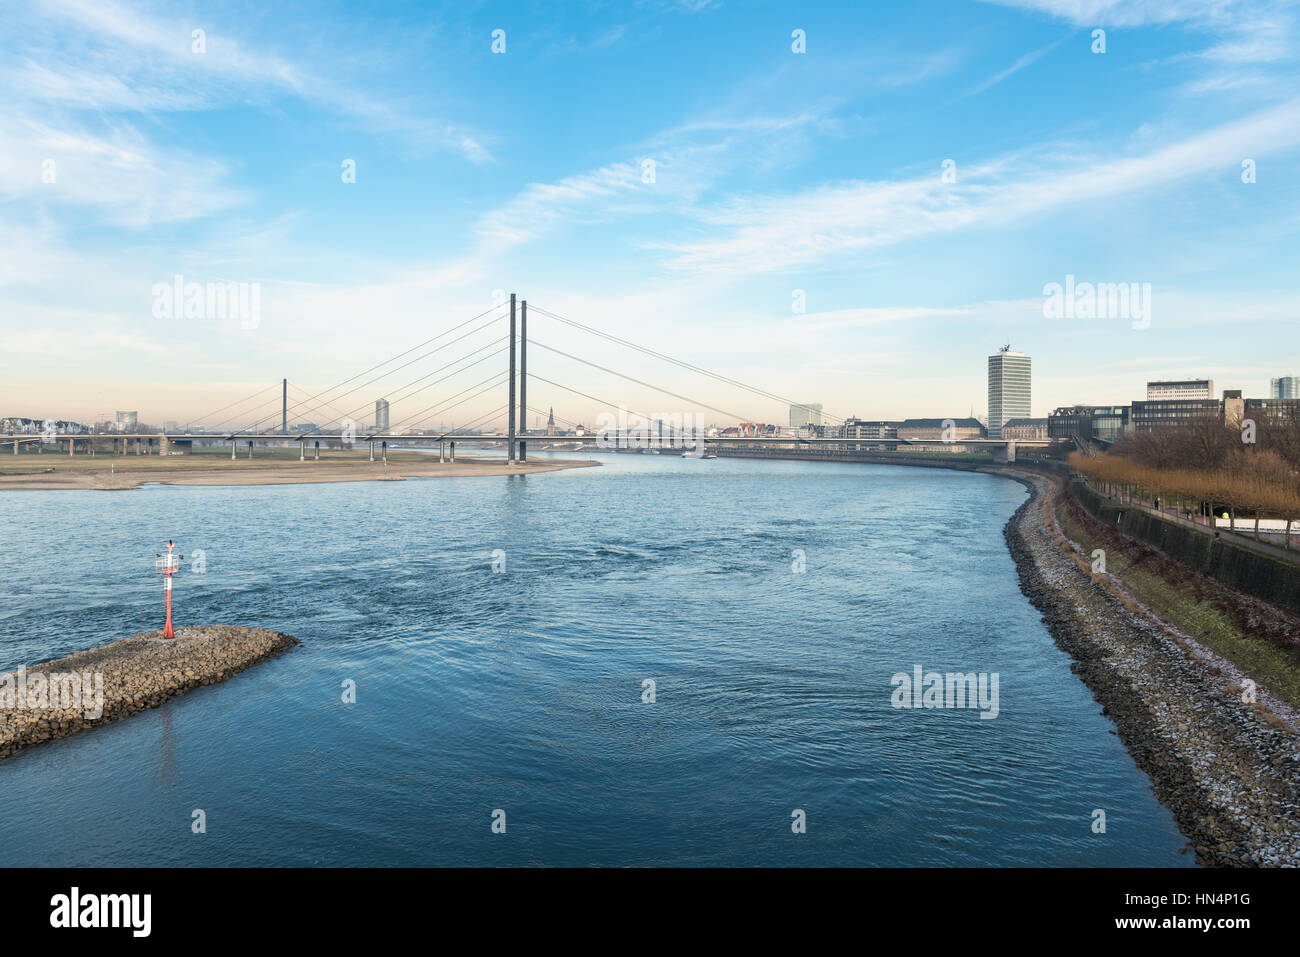 DUESSELDORF, GERMANY - JANUARY 20, 2017: From one of the skywalks in the new media harbor one has a spectacular - Stock Image